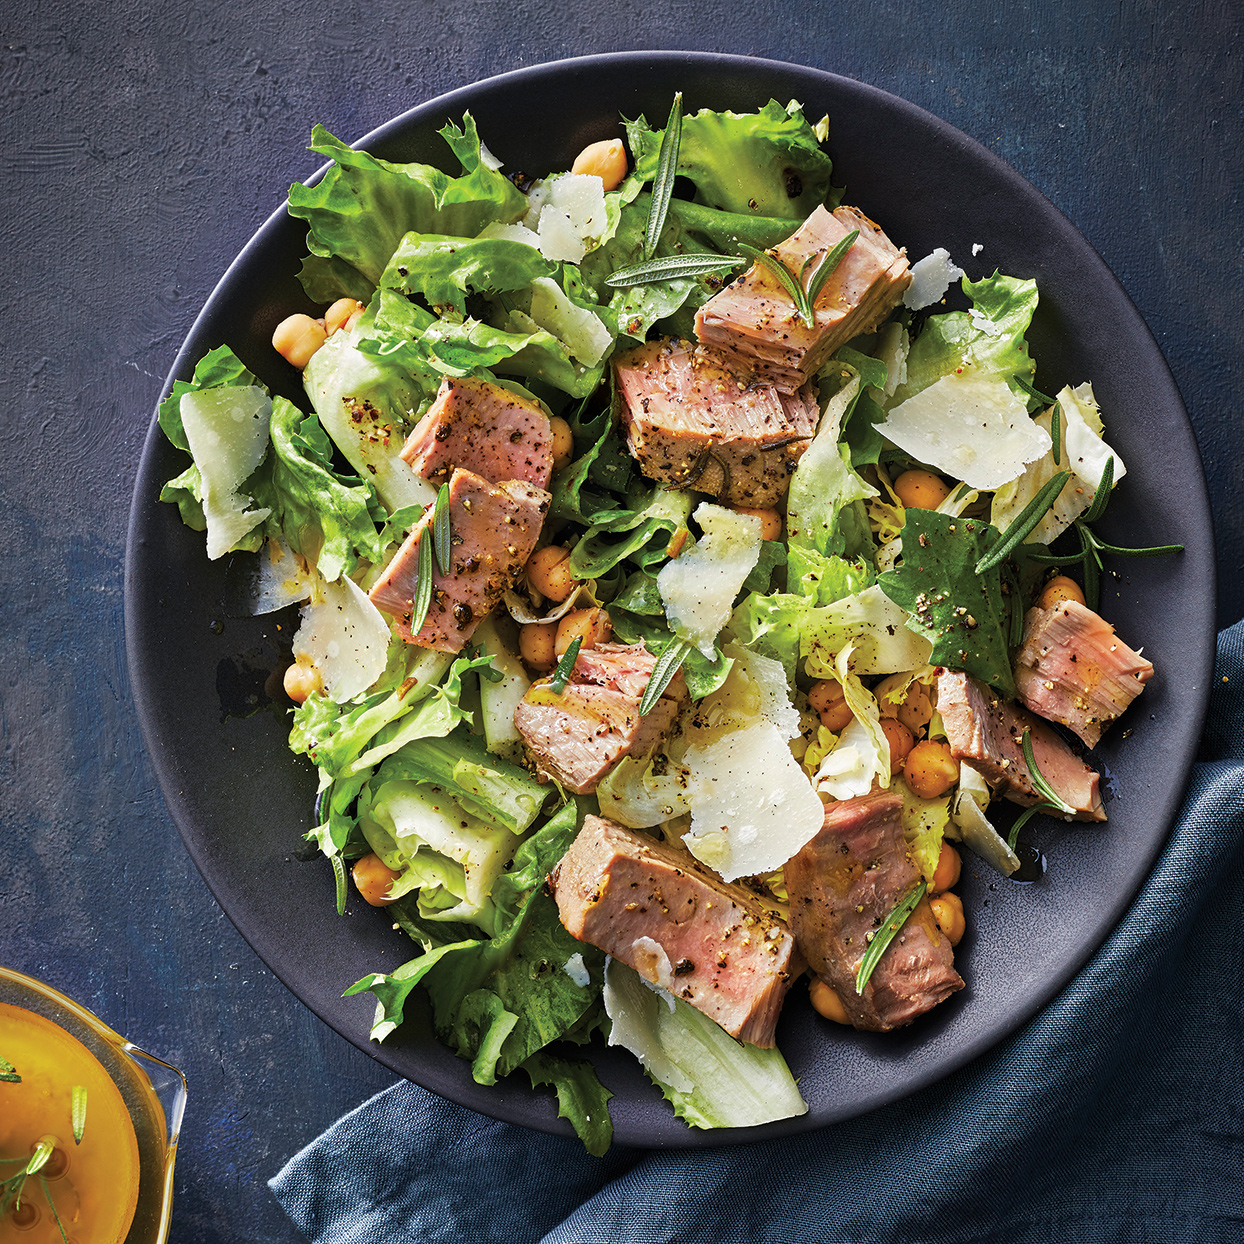 This fish salad is a unique twist on traditional slow-cooker fare. The slow-cooker tuna steaks carry the bright lemon and rosemary flavors well, which result in an aromatic and fresh fish that perfectly complements the lettuce and chickpeas. Chill it for an easy work lunch the next day. Garnish with fresh rosemary leaves, if desired. Source: Everyday Slow Cooker